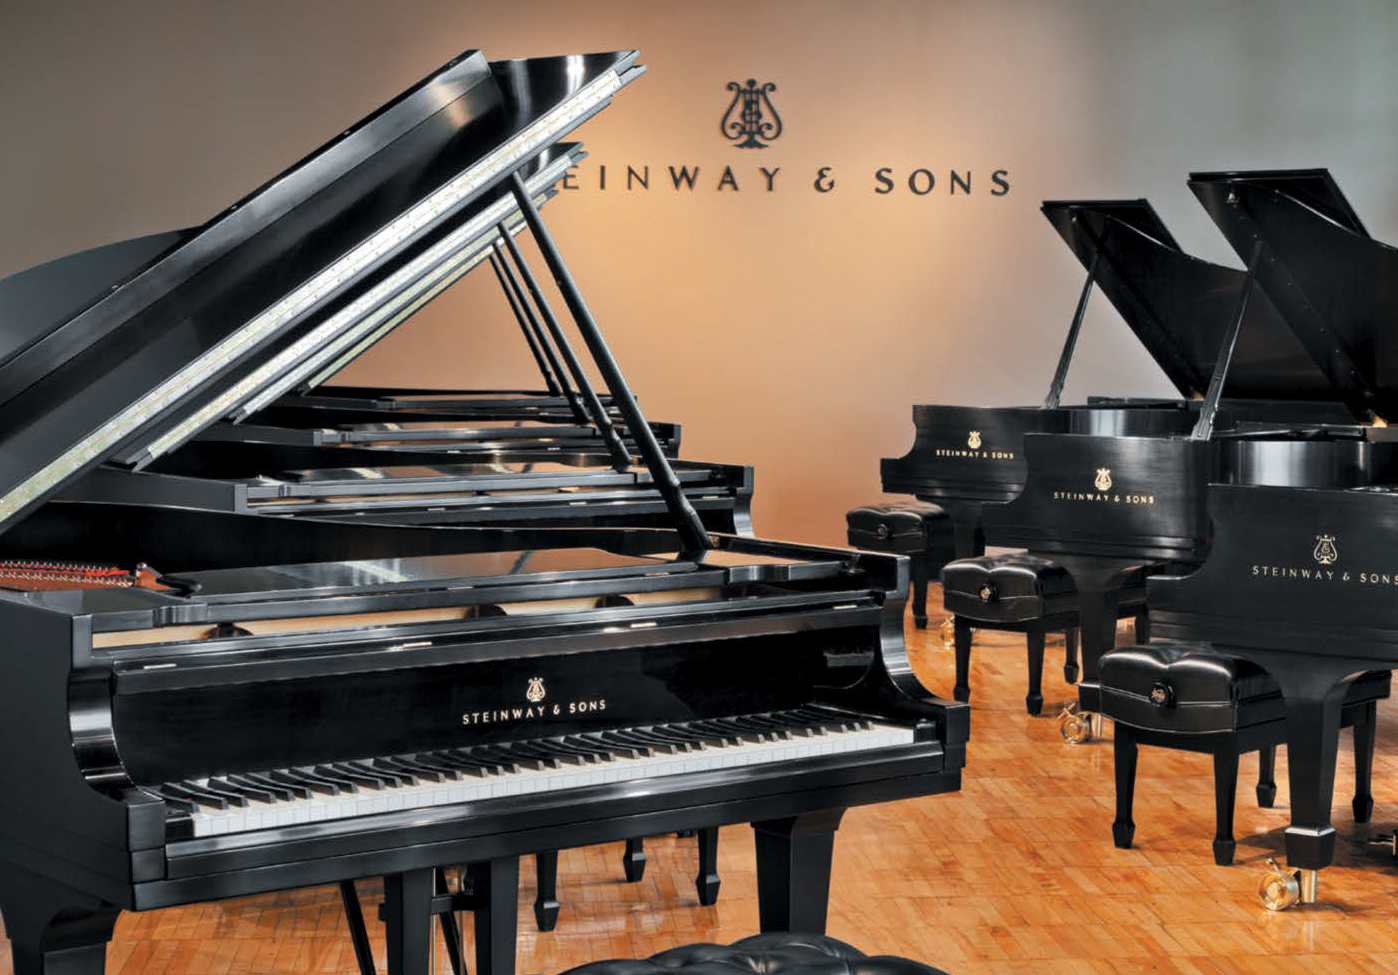 New polished piano finishes at the Steinway & Sons factory selection room in Long Island City, N.Y.